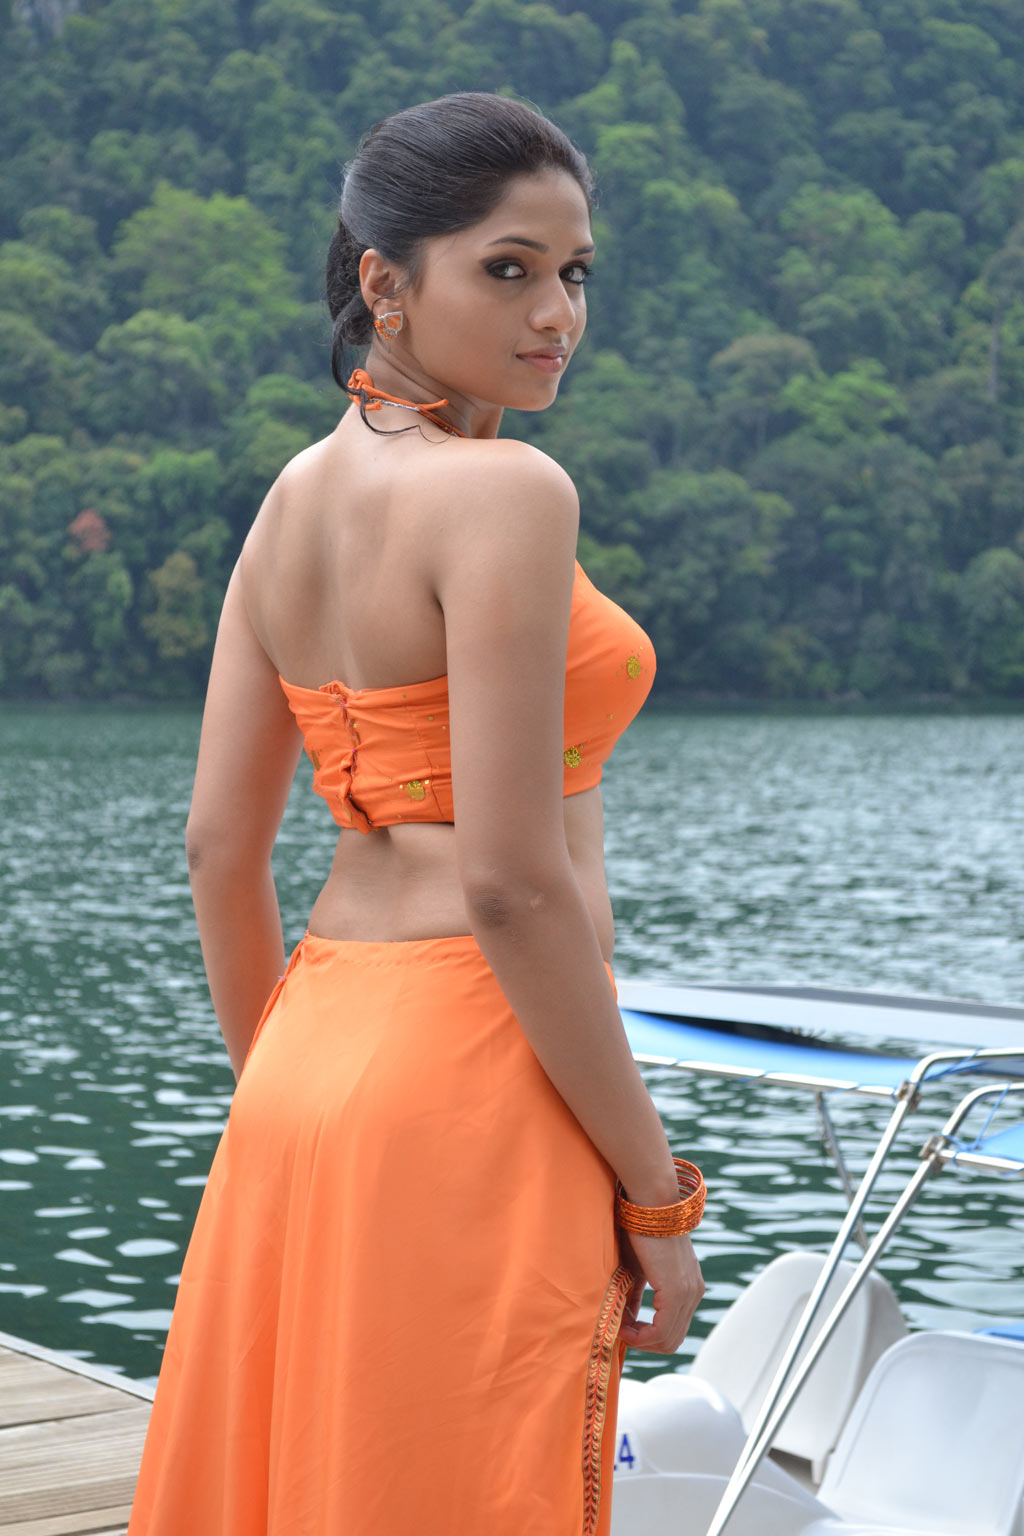 30  Sunaina Hot Latest Hd Pictures Images In Short Cloths